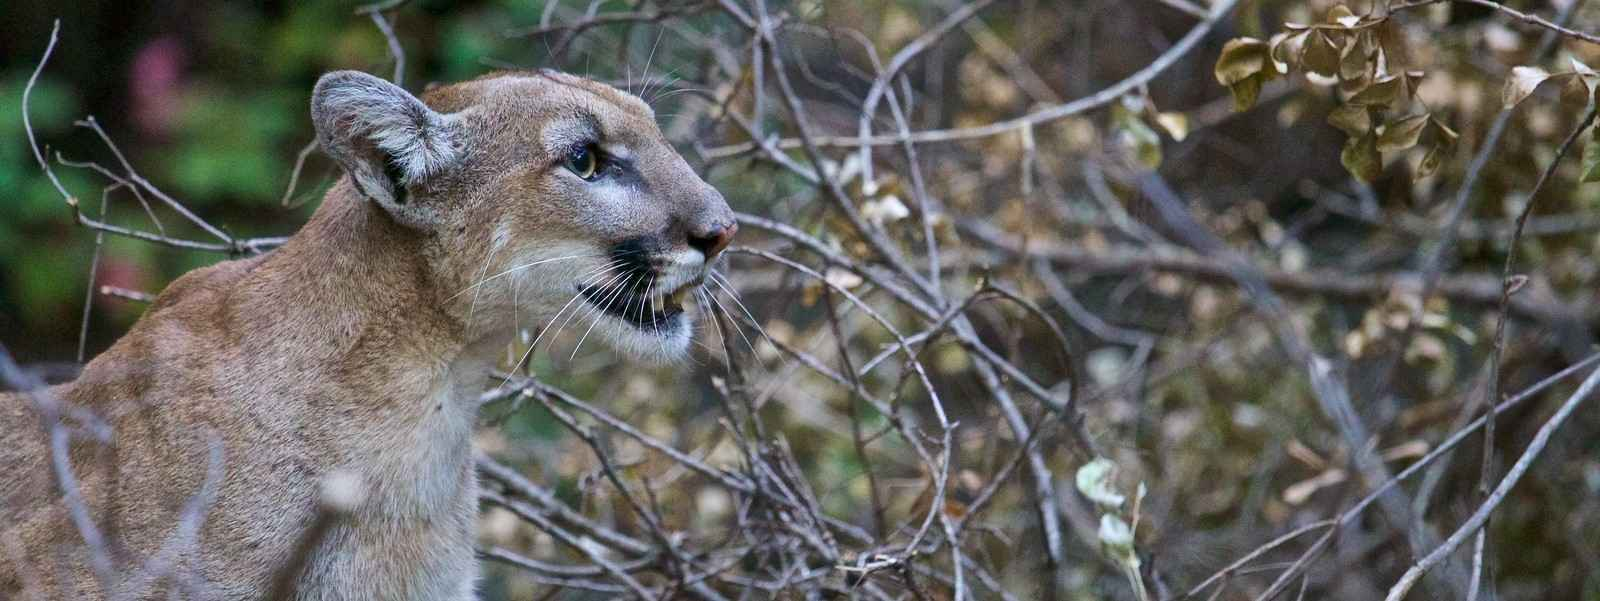 Save California's Mountain Lions image